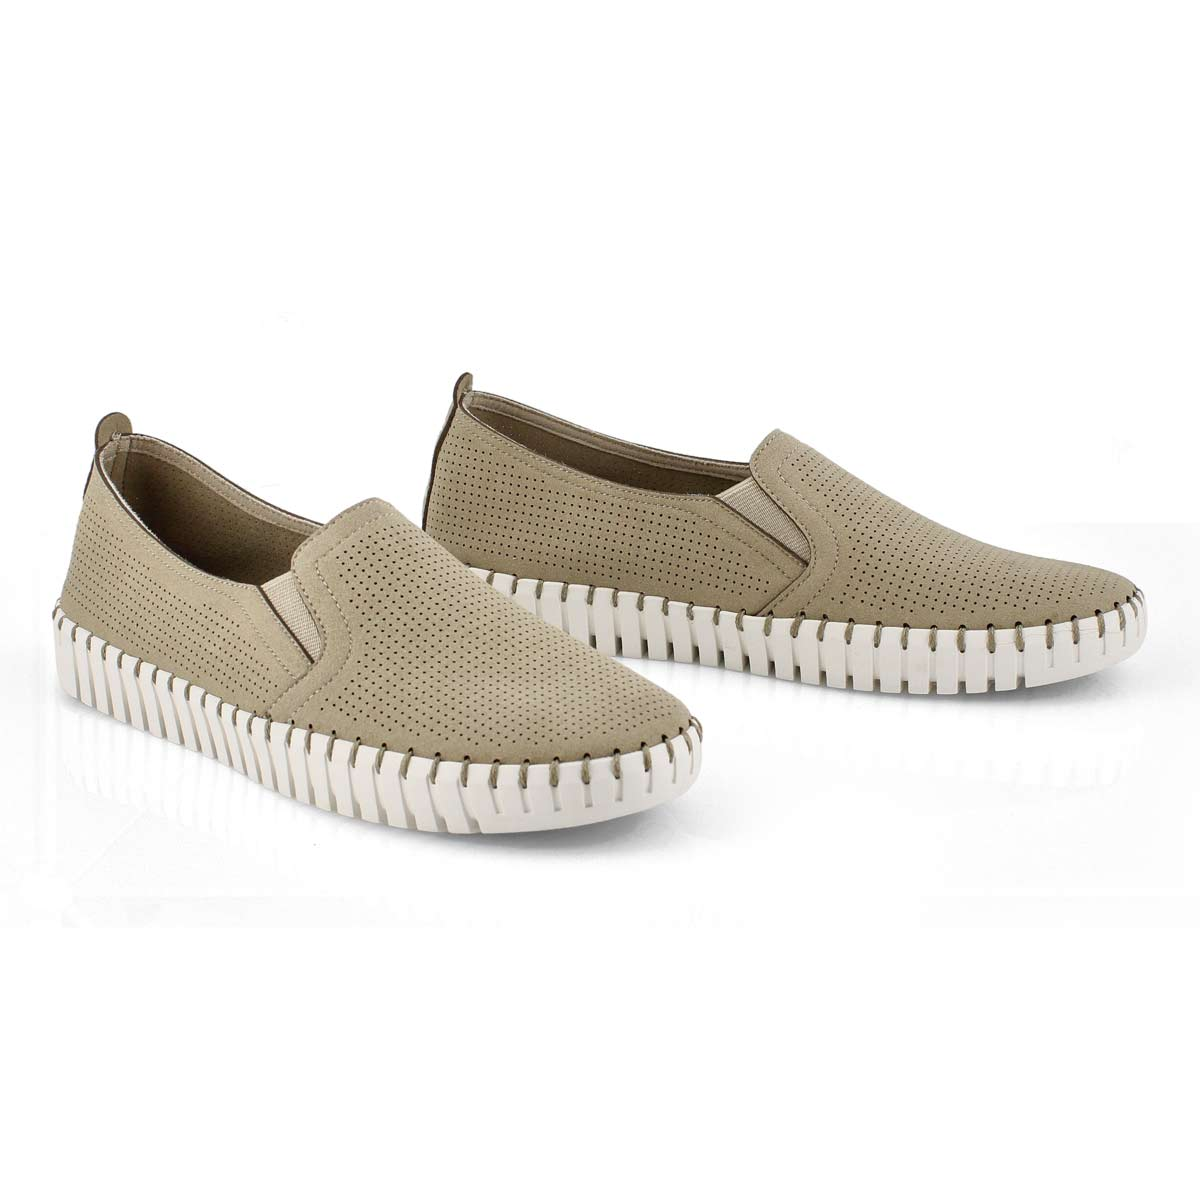 Lds Sepulveda Blvd taupe slip on sneaker